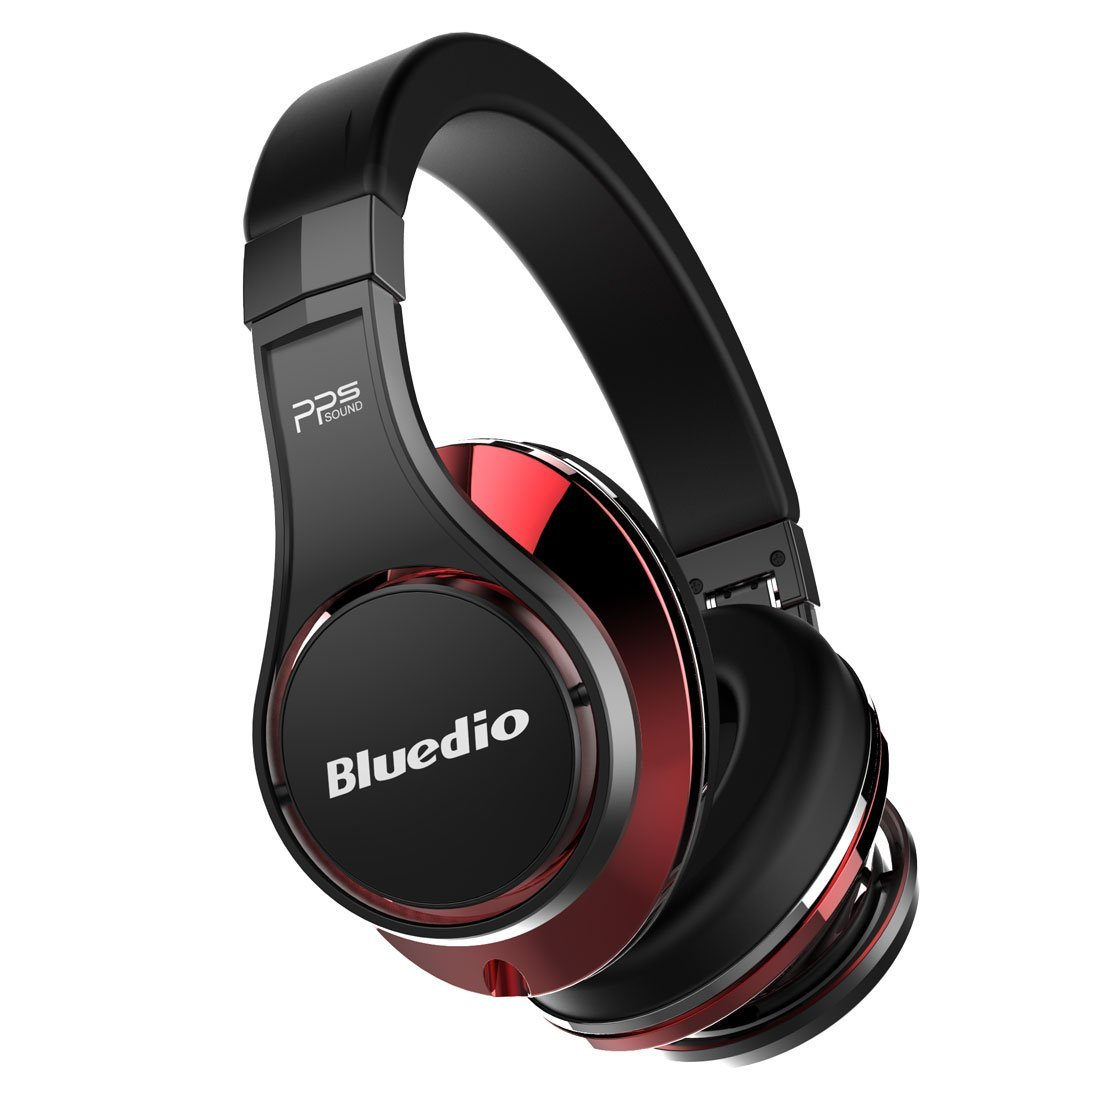 Bluedio UFO Wireless Headphone With Mic